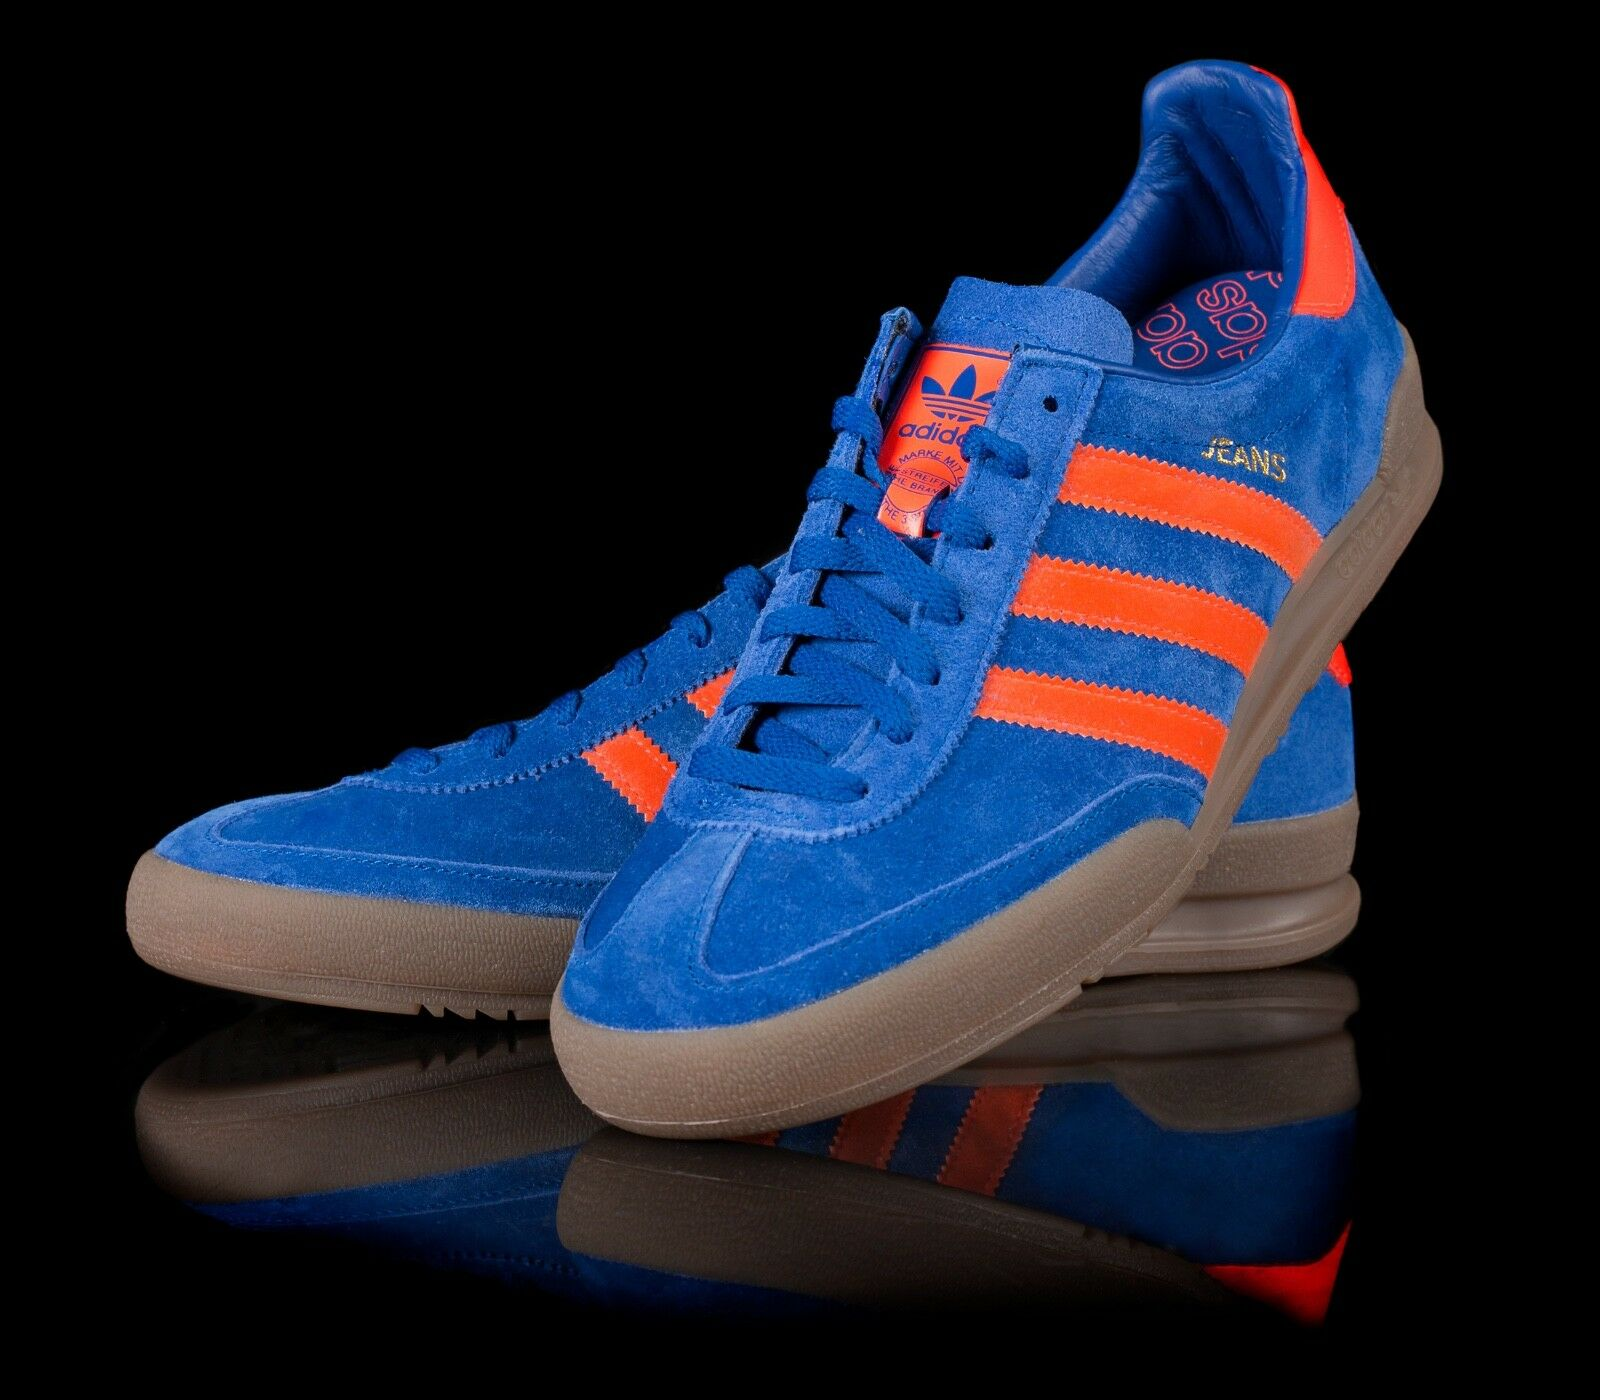 adidas homme Matchcourt Slip Trainers UK 8 UK Trainers 132aaf